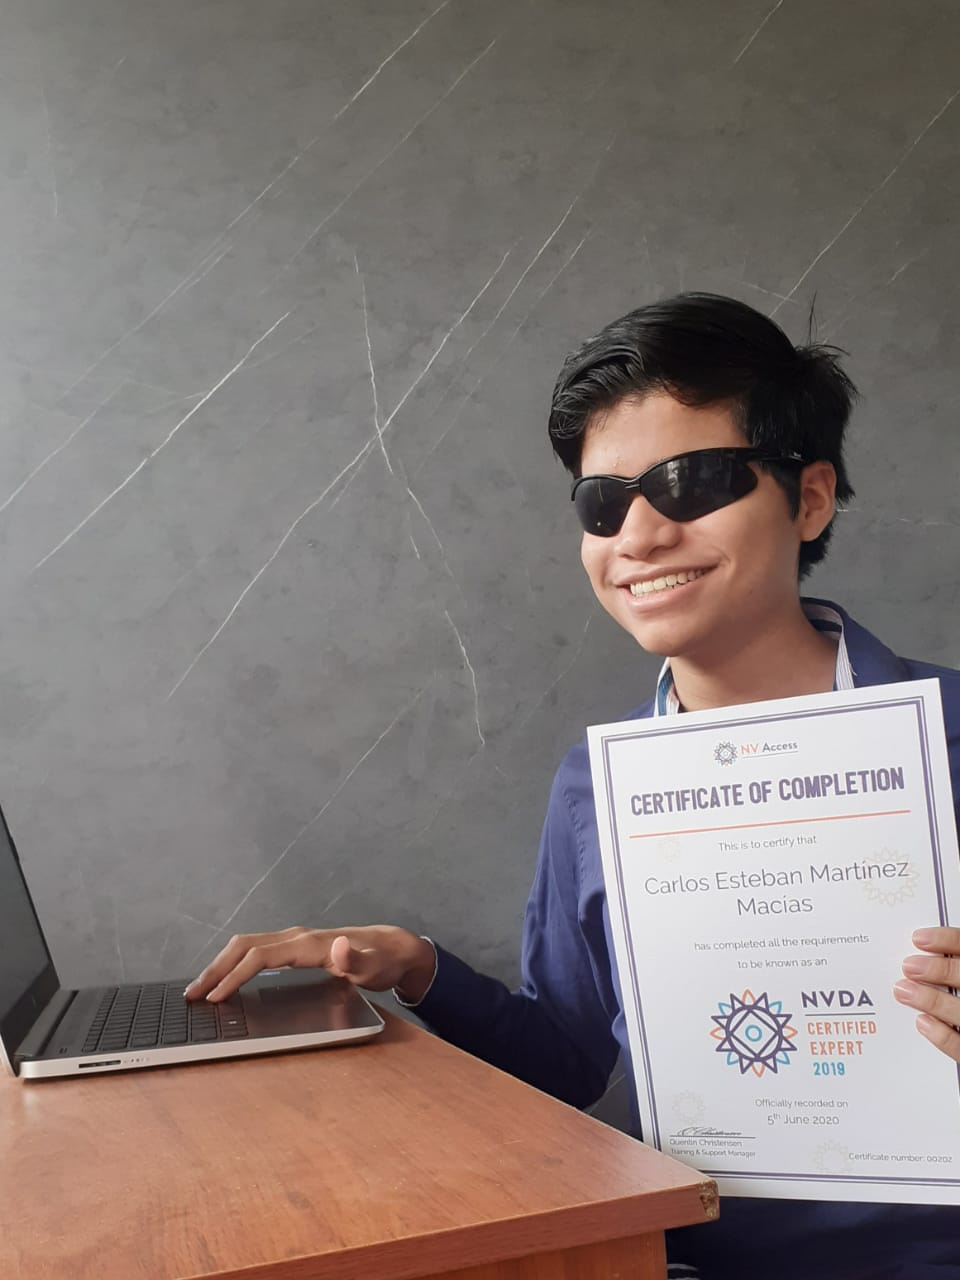 Carlos Esteban Martínez Macías holding NVDA Certified Expert Certificate and with hand on PC keyboard